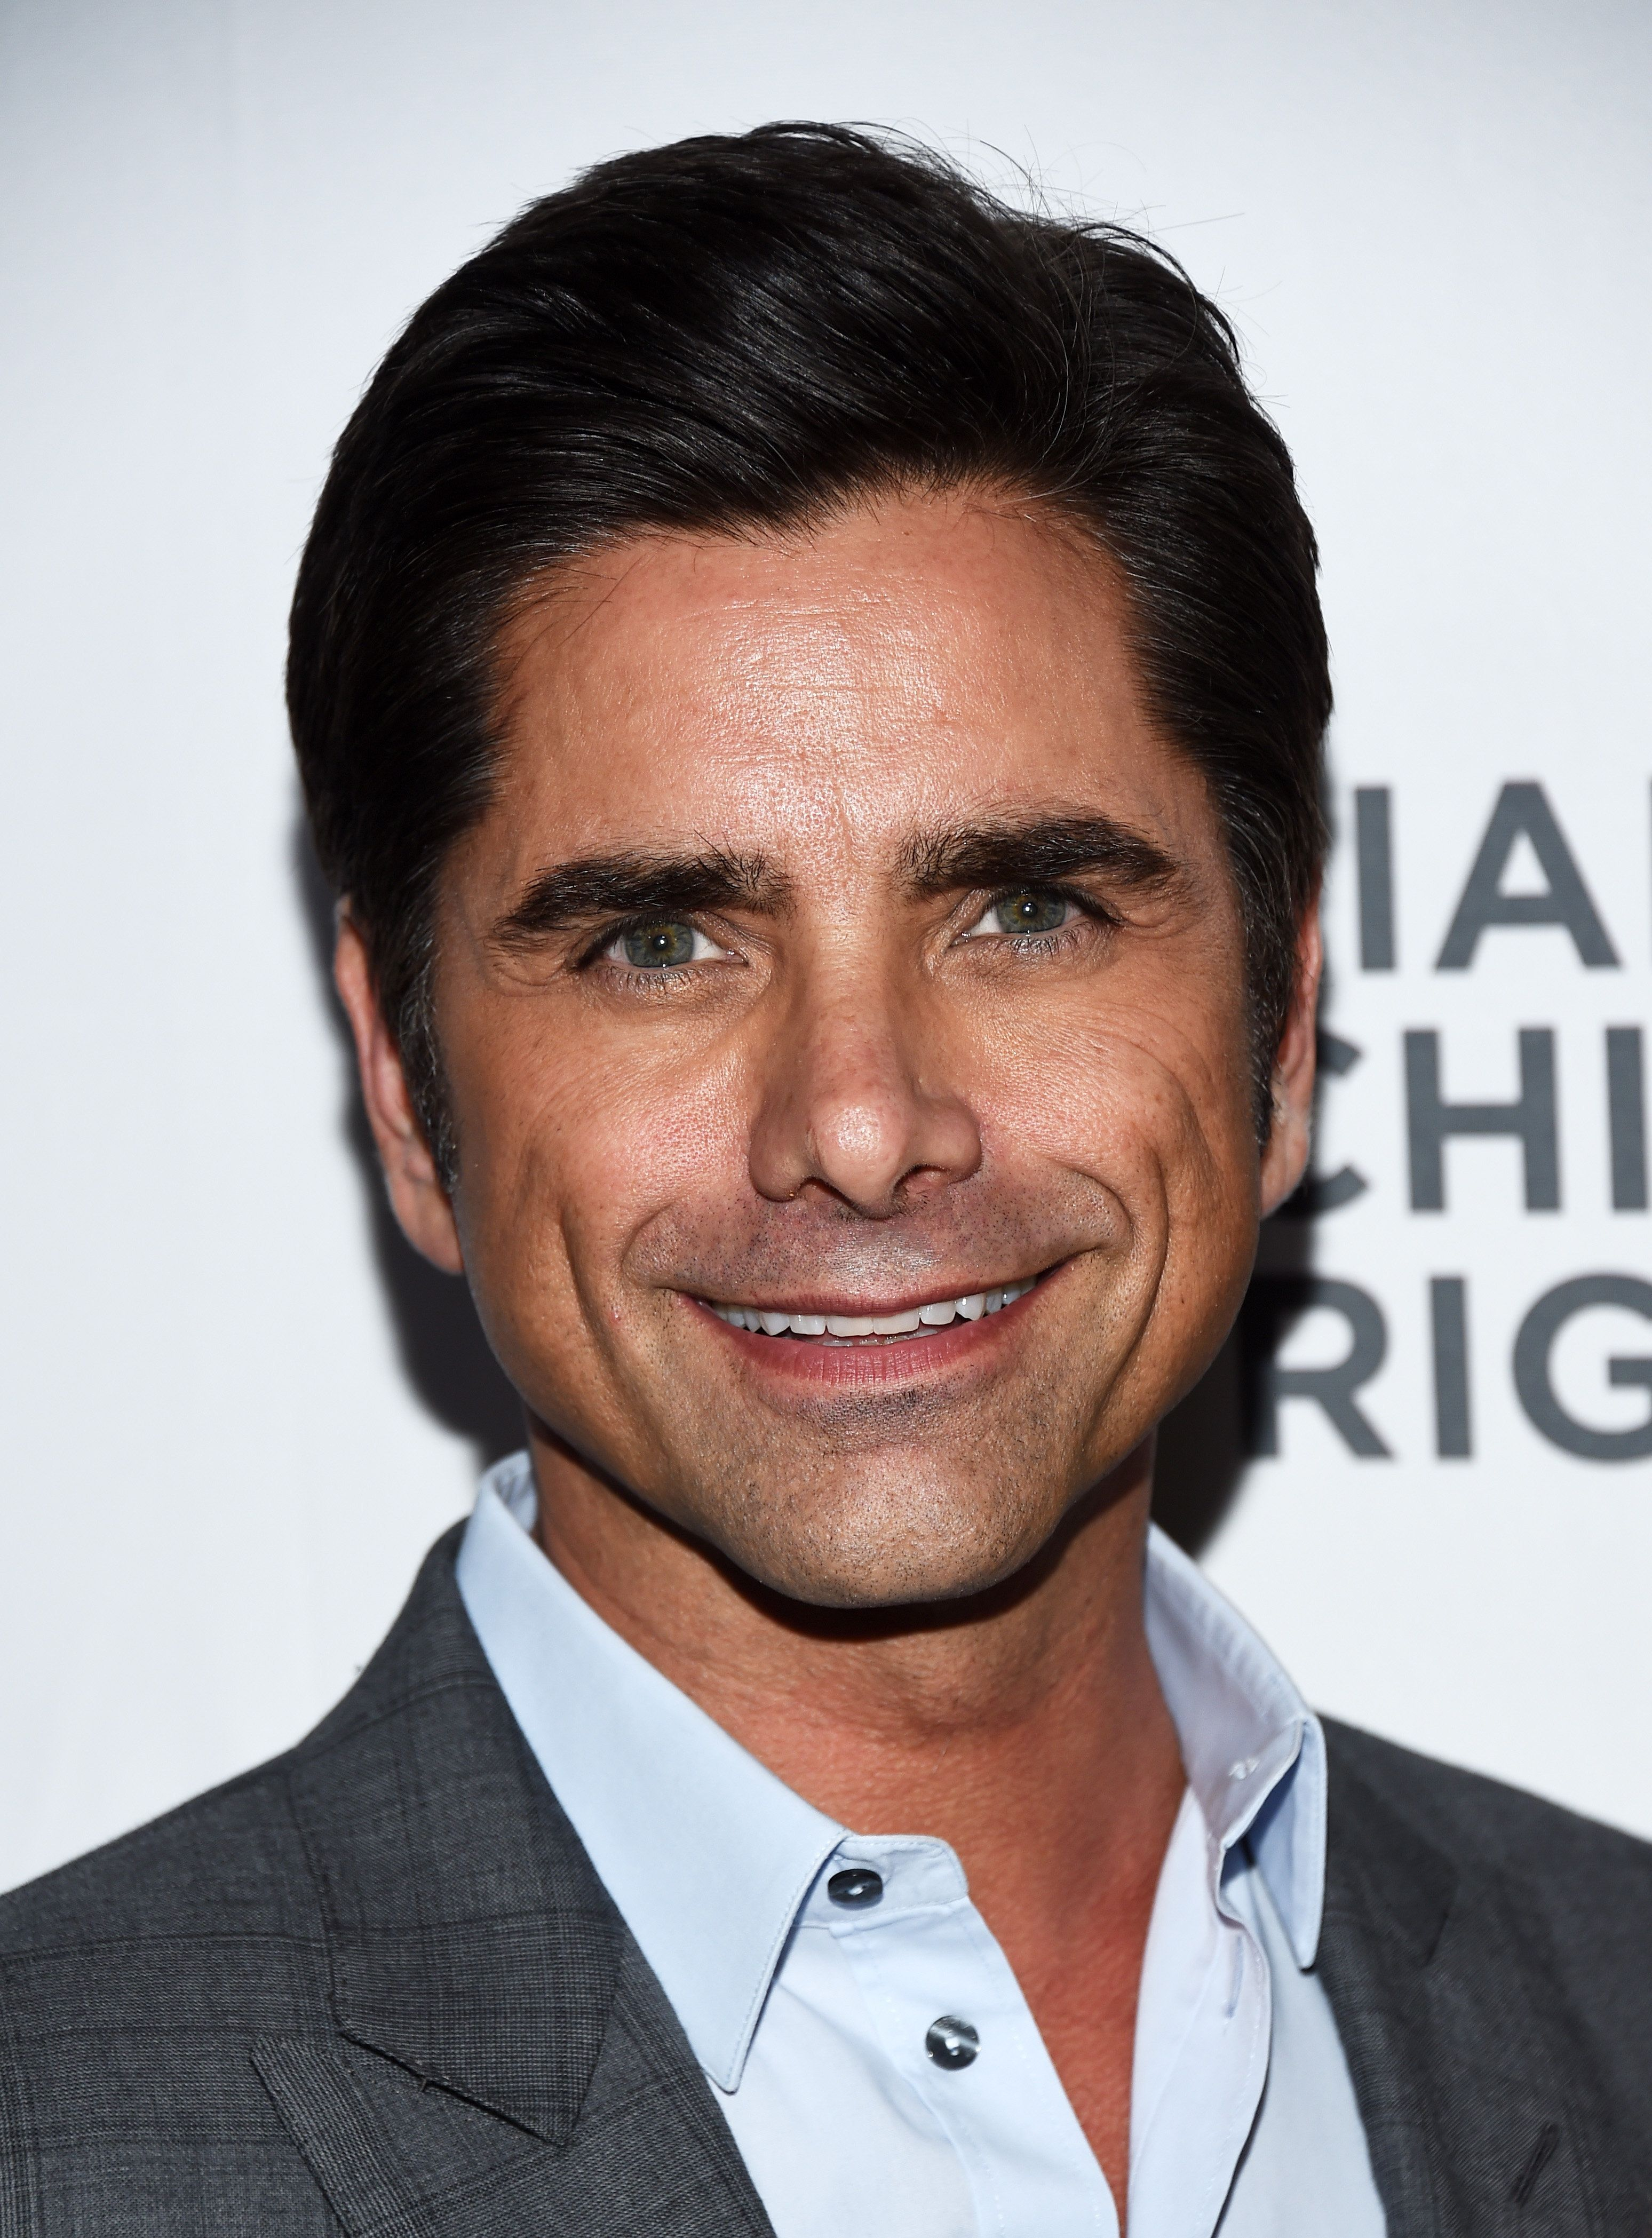 BEVERLY HILLS, CA - MARCH 10:  Actor John Stamos arrives at the Alliance For Children's Rights' 24th Annual Dinner at The Beverly Hilton Hotel on March 10, 2016 in Beverly Hills, California.  (Photo by Amanda Edwards/WireImage)